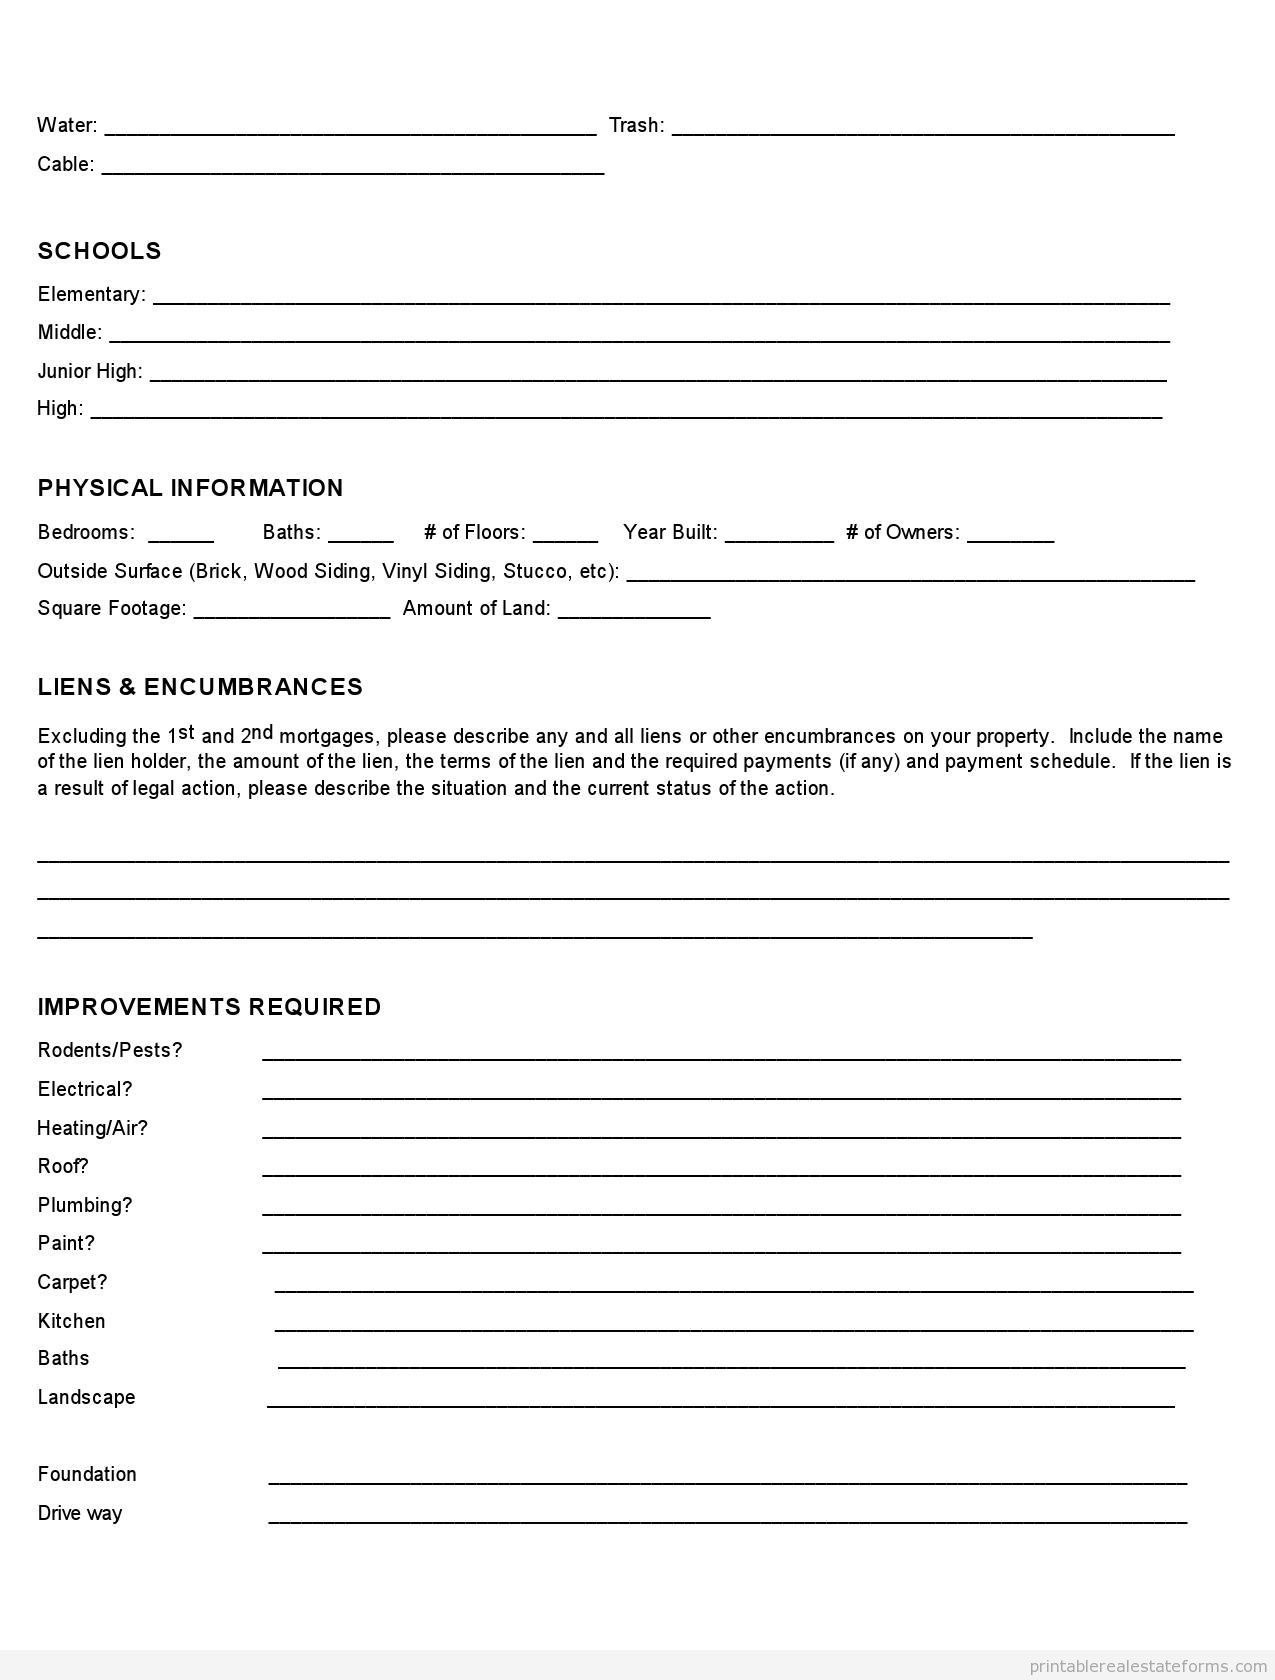 Sample Printable Property Fact Sheet Form  Printable Real Estate Regarding Free Commercial Property Management Agreement Template